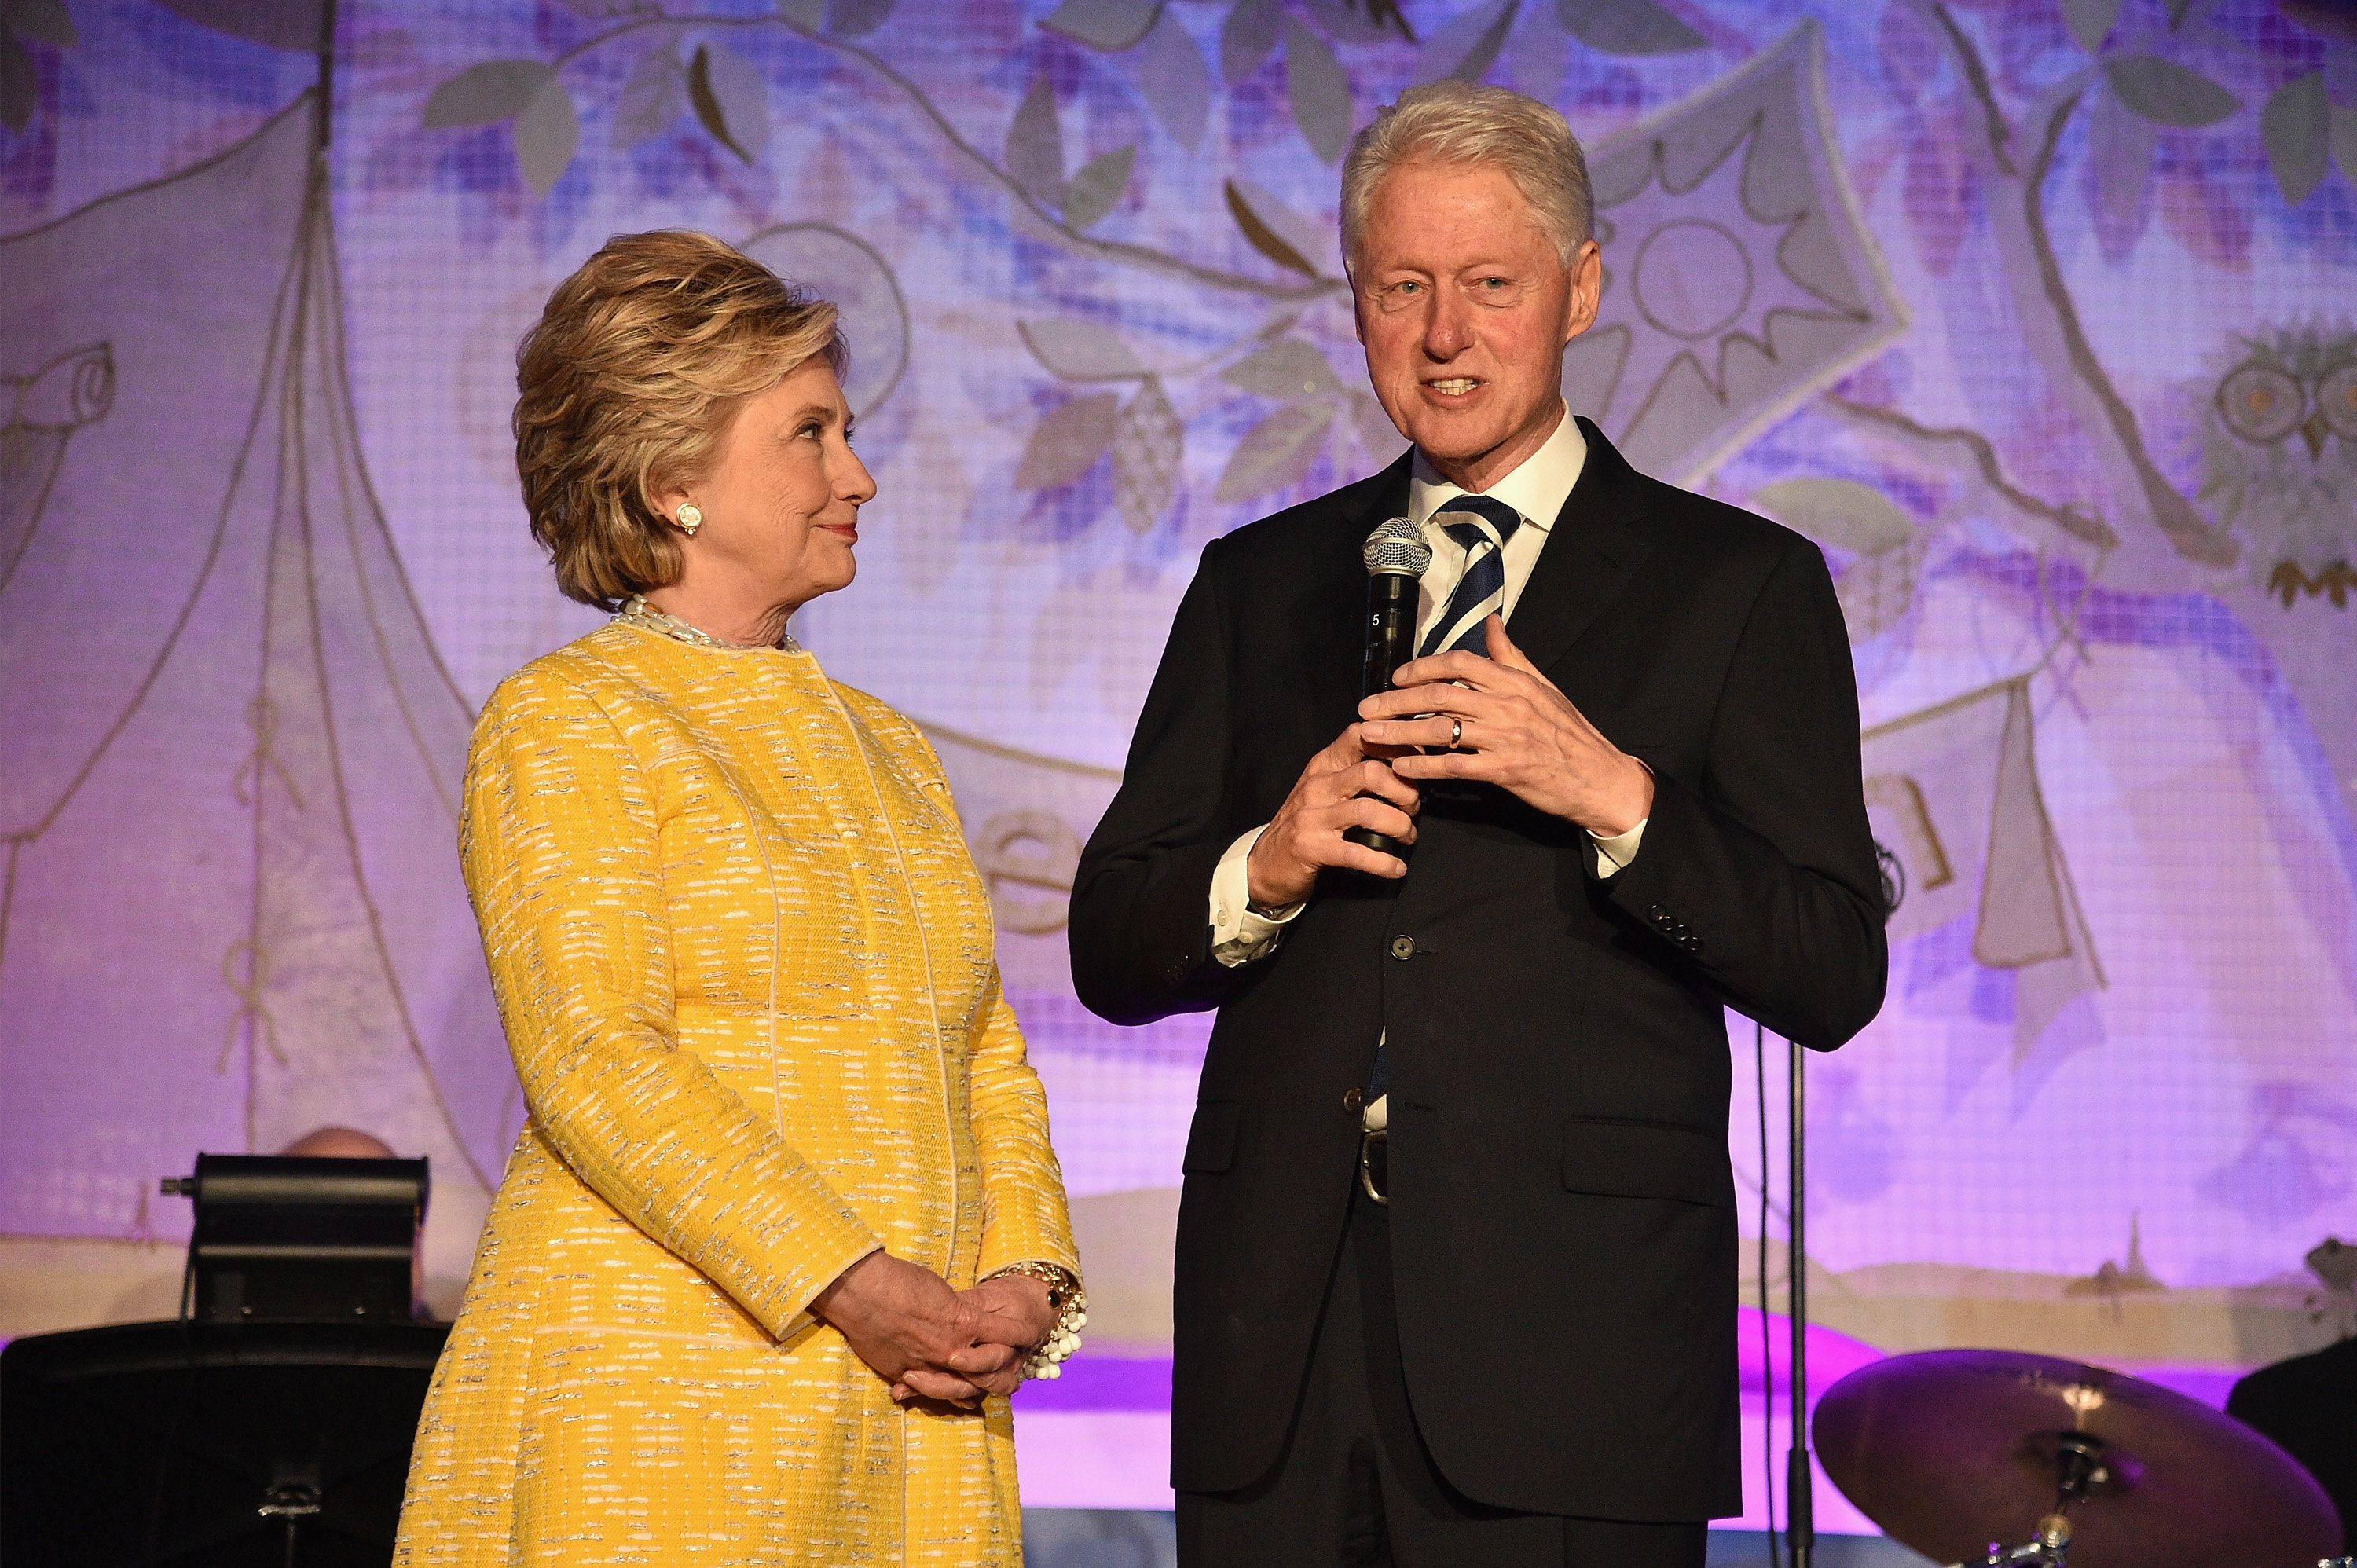 Former Secretary of State Hillary Clinton and former President Bill Clinton speak onstage during the SeriousFun Children's Ne